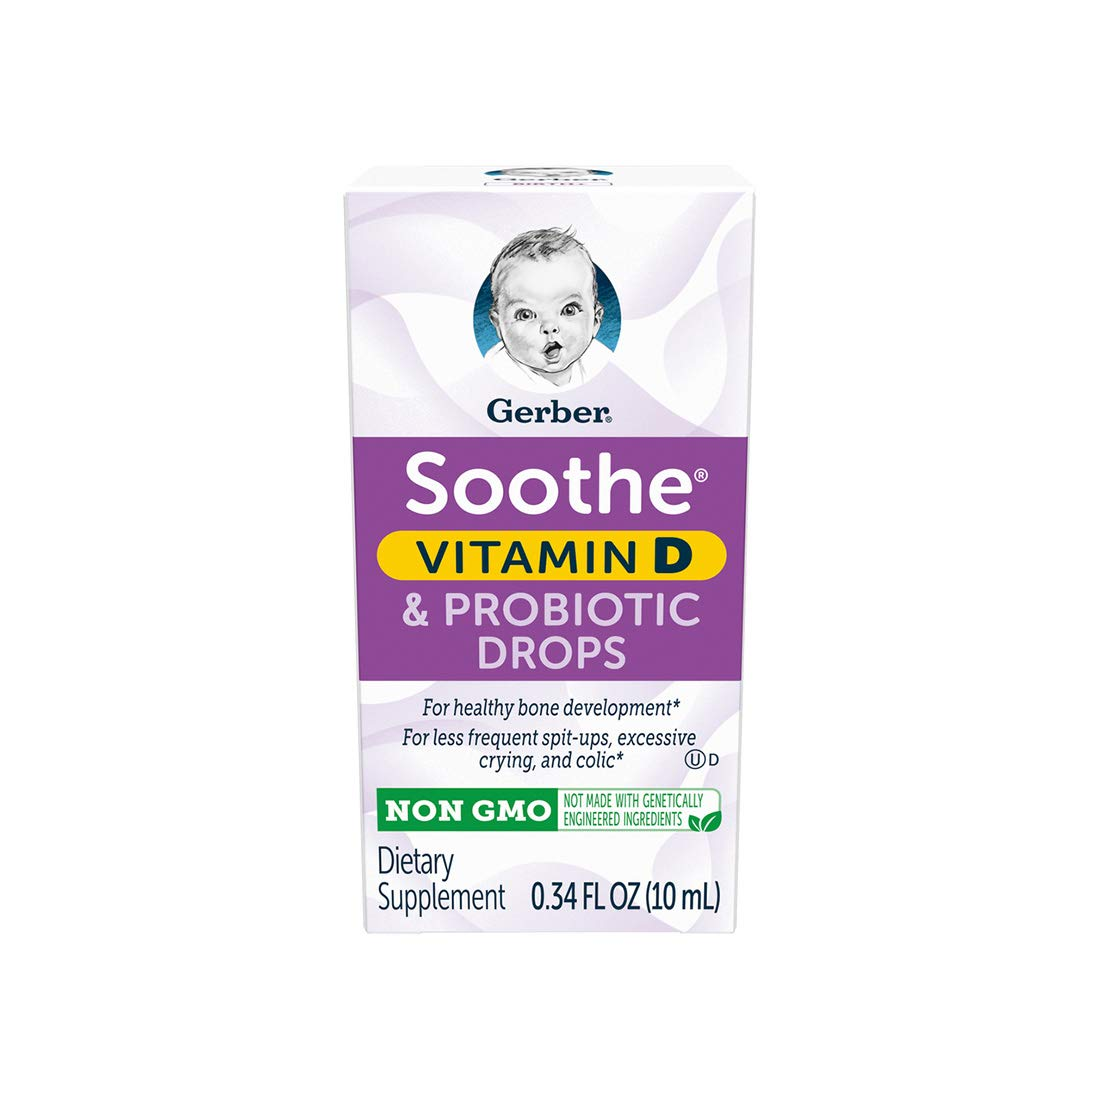 Gerber Soothe Baby Probiotic Drops with 100% Daily Vitamin D For Newborns, Infants, Babies and Toddlers, Colic, Spit-Up and Digestive Health, Clinically Proven, 0.34 fl oz by Gerber